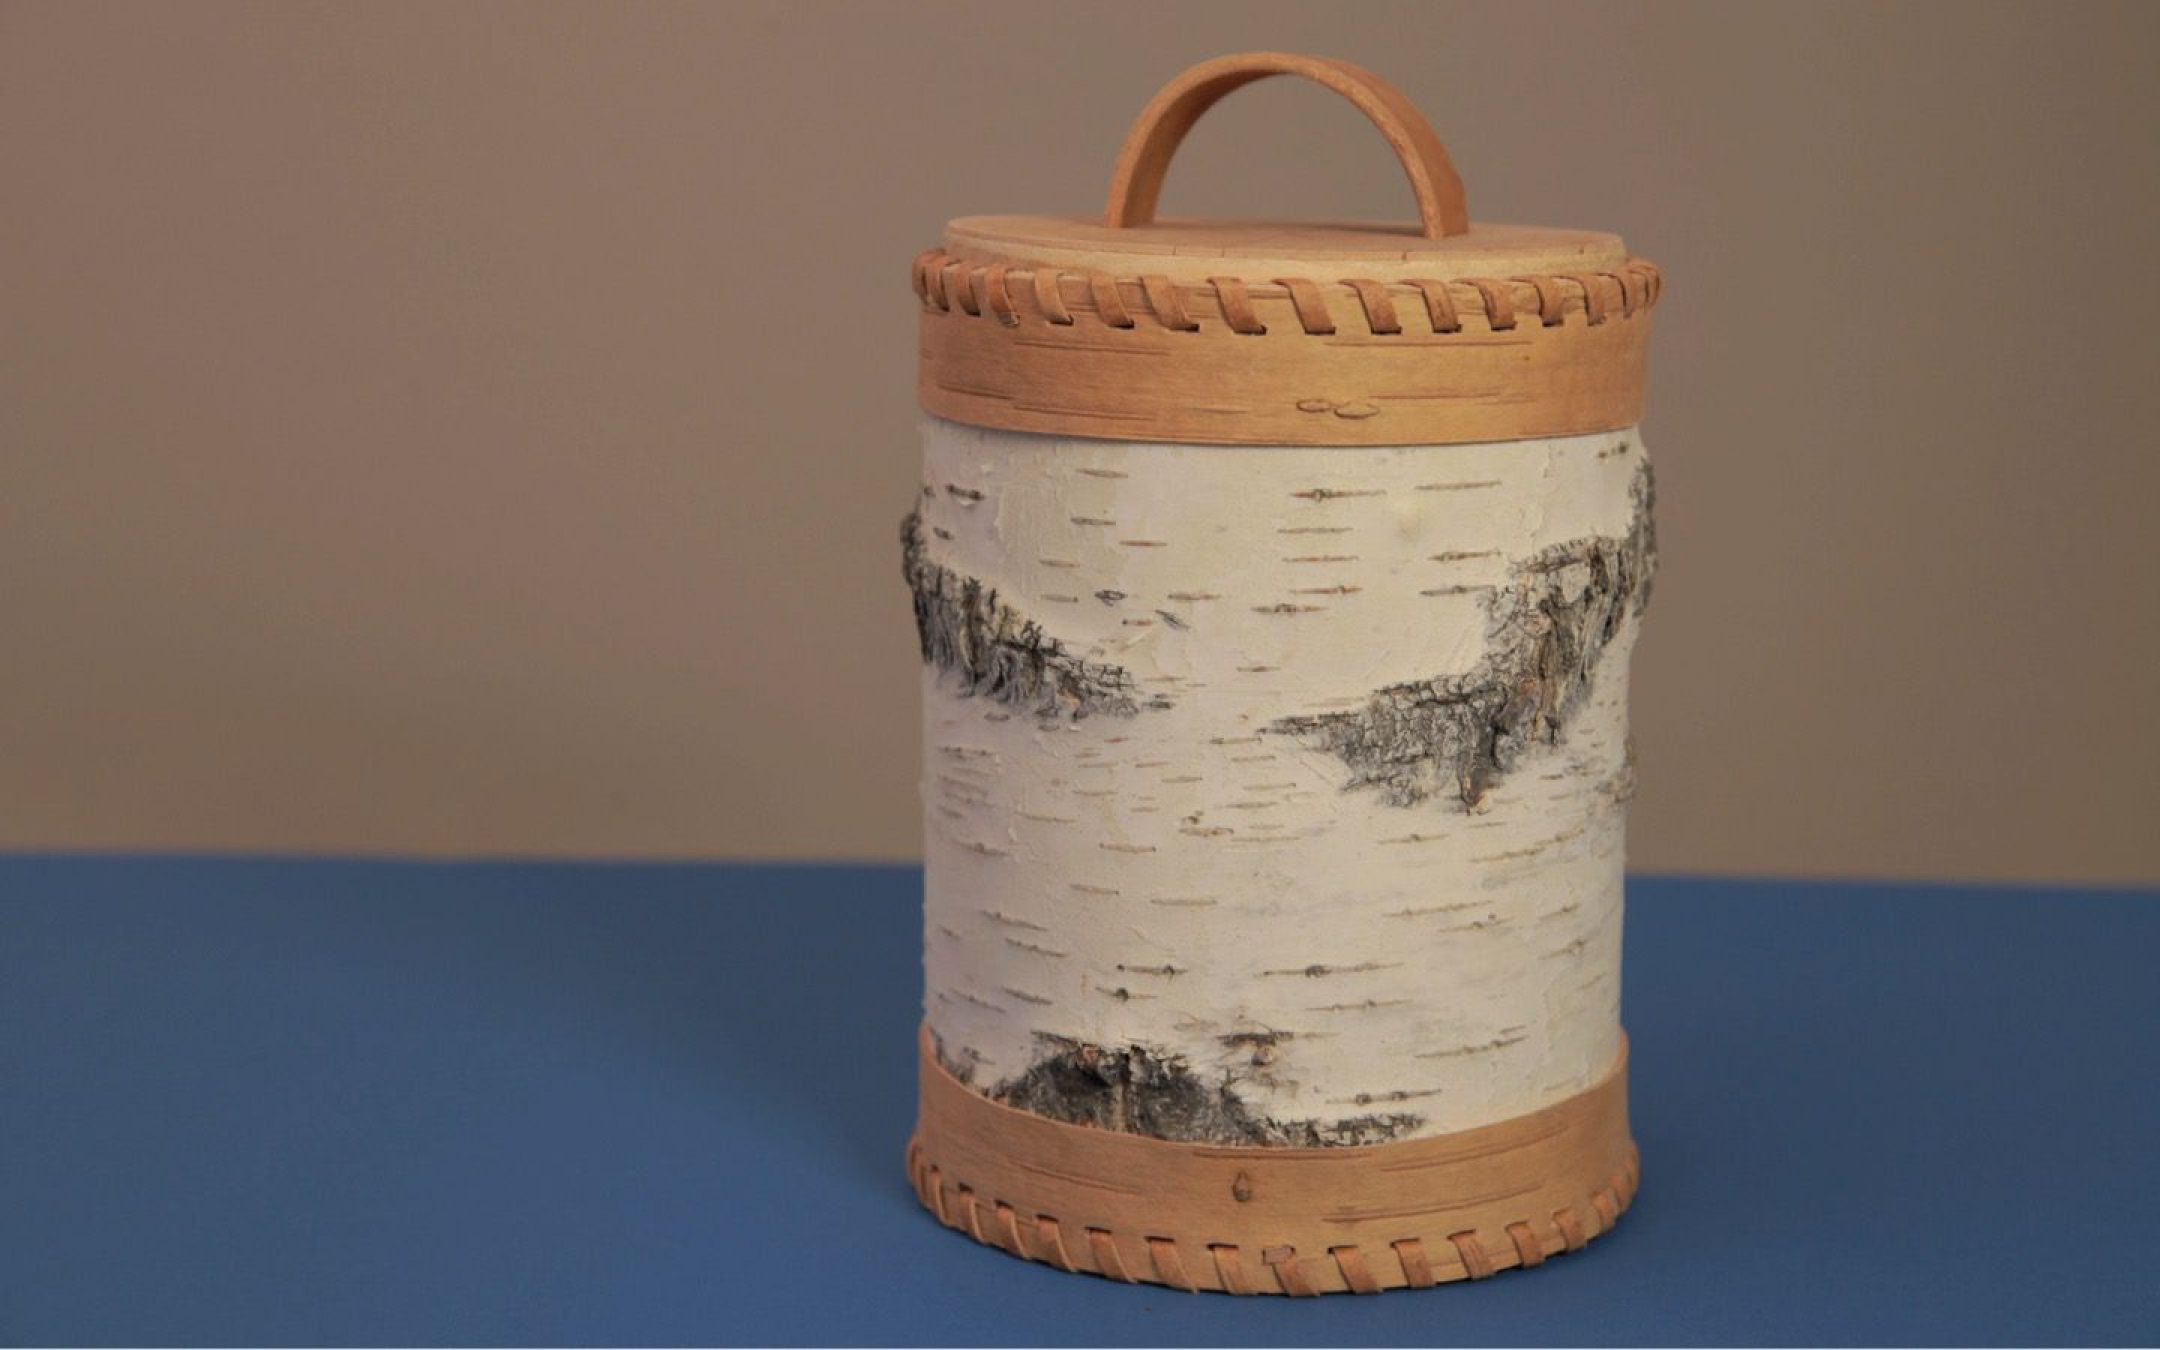 Birch bark food containers